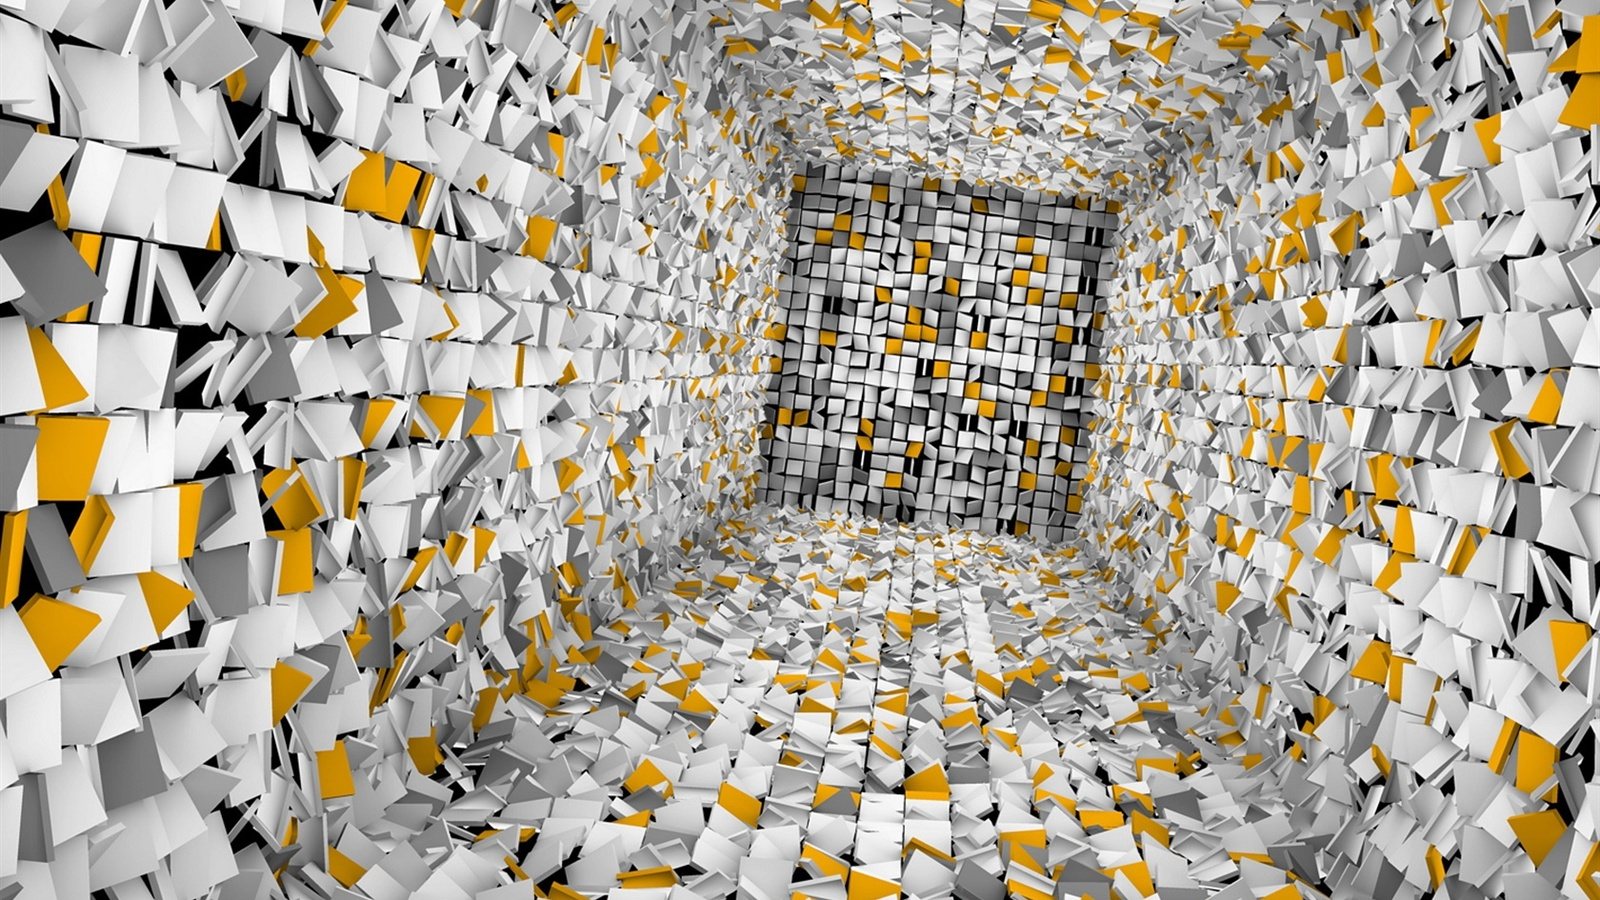 Wallpaper Lost In The Abstract 3d Room 1680x1050 Hd Picture